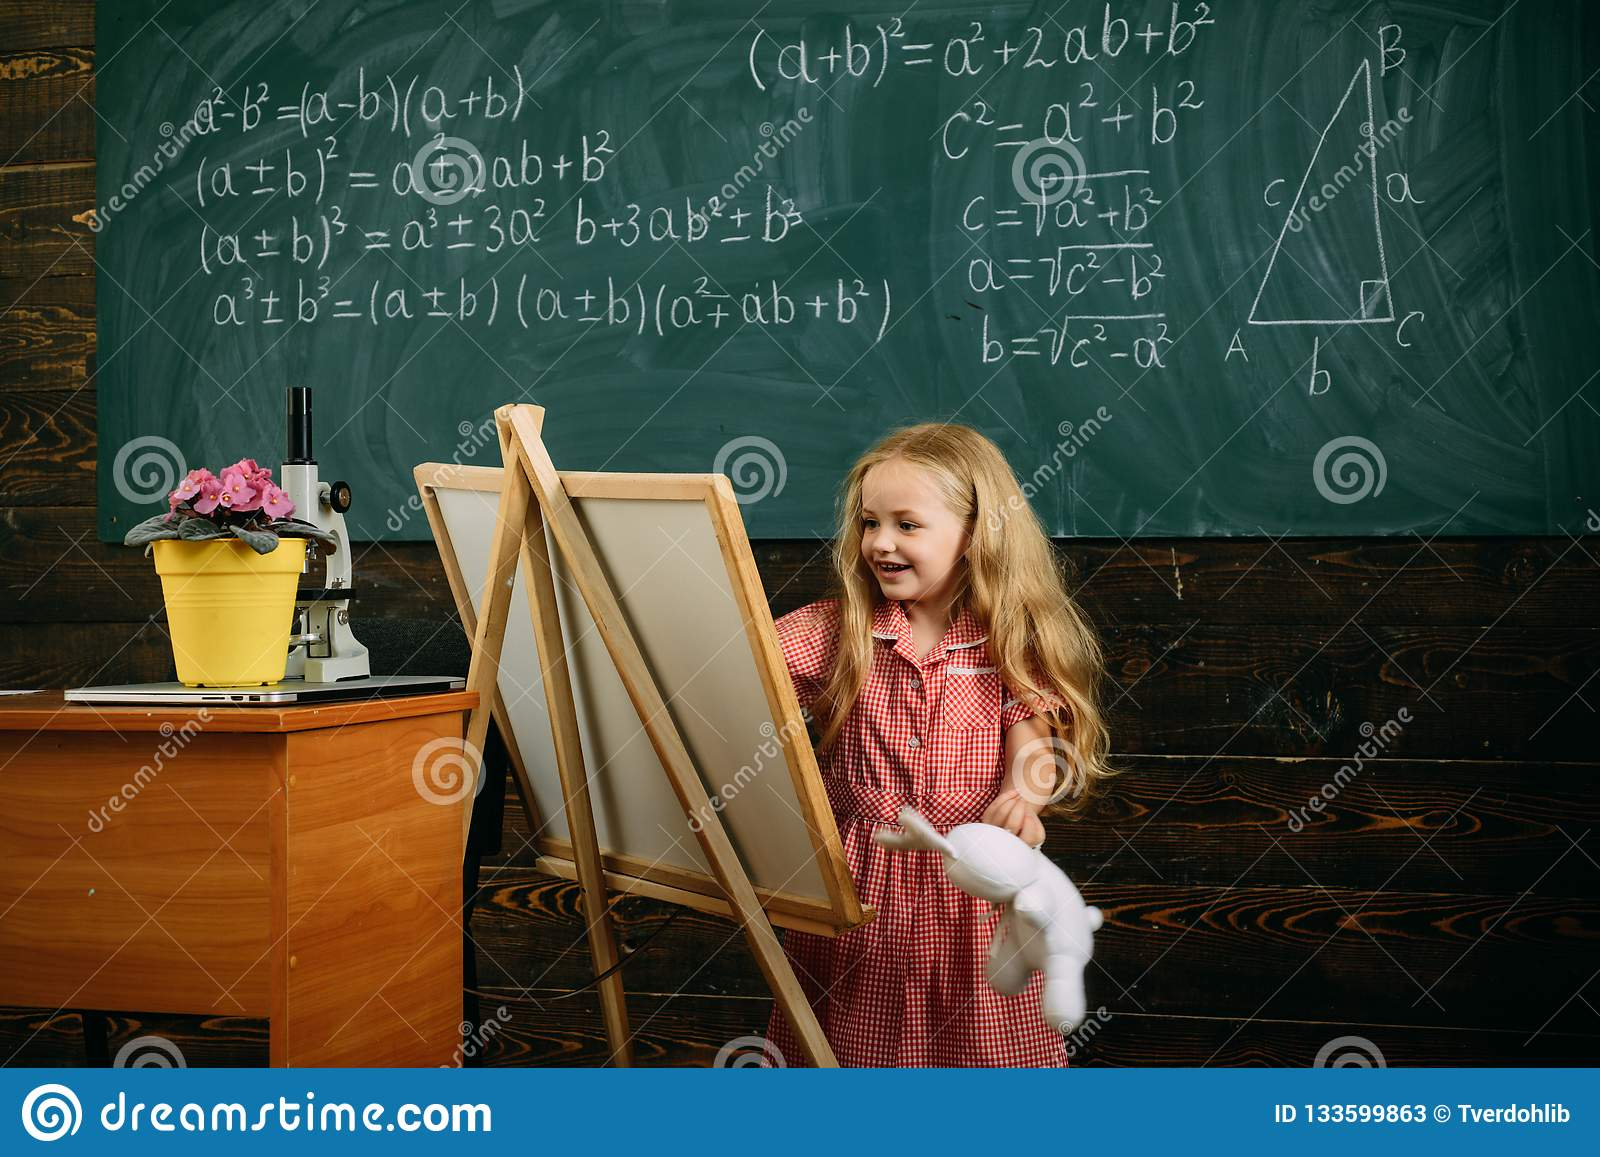 Creative artist painting on studio easel. Little artist girl creating picture in class